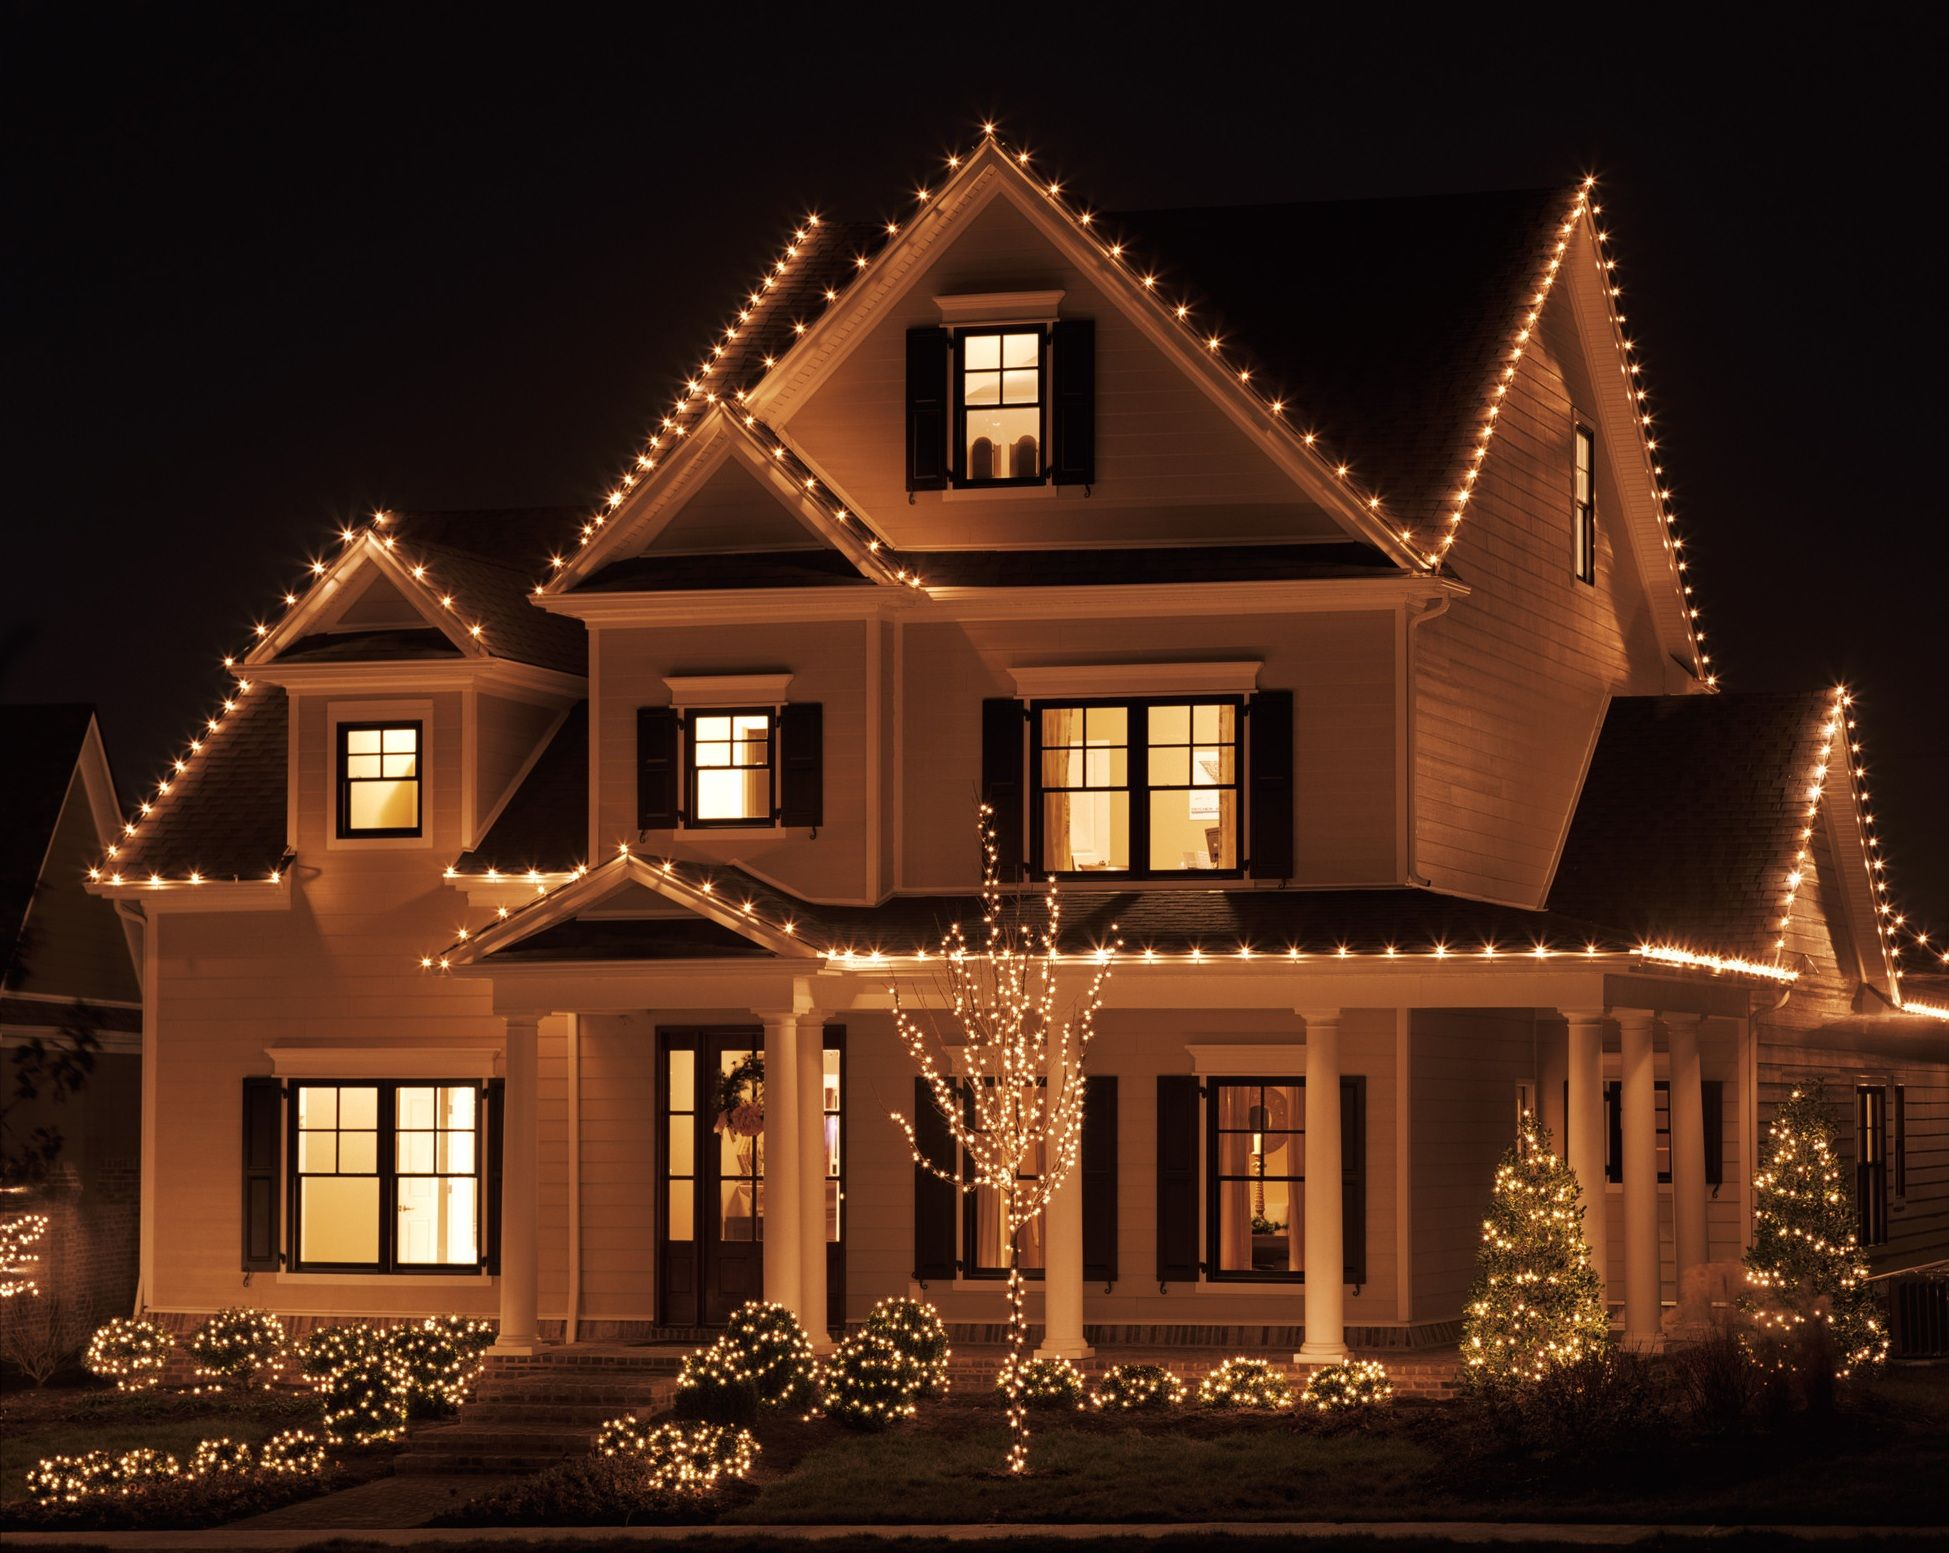 We Ve Got The Tips And Tricks You Need To Hang Your Lights Carefully Without Damag Outdoor Christmas Lights Christmas Lights Outside Exterior Christmas Lights